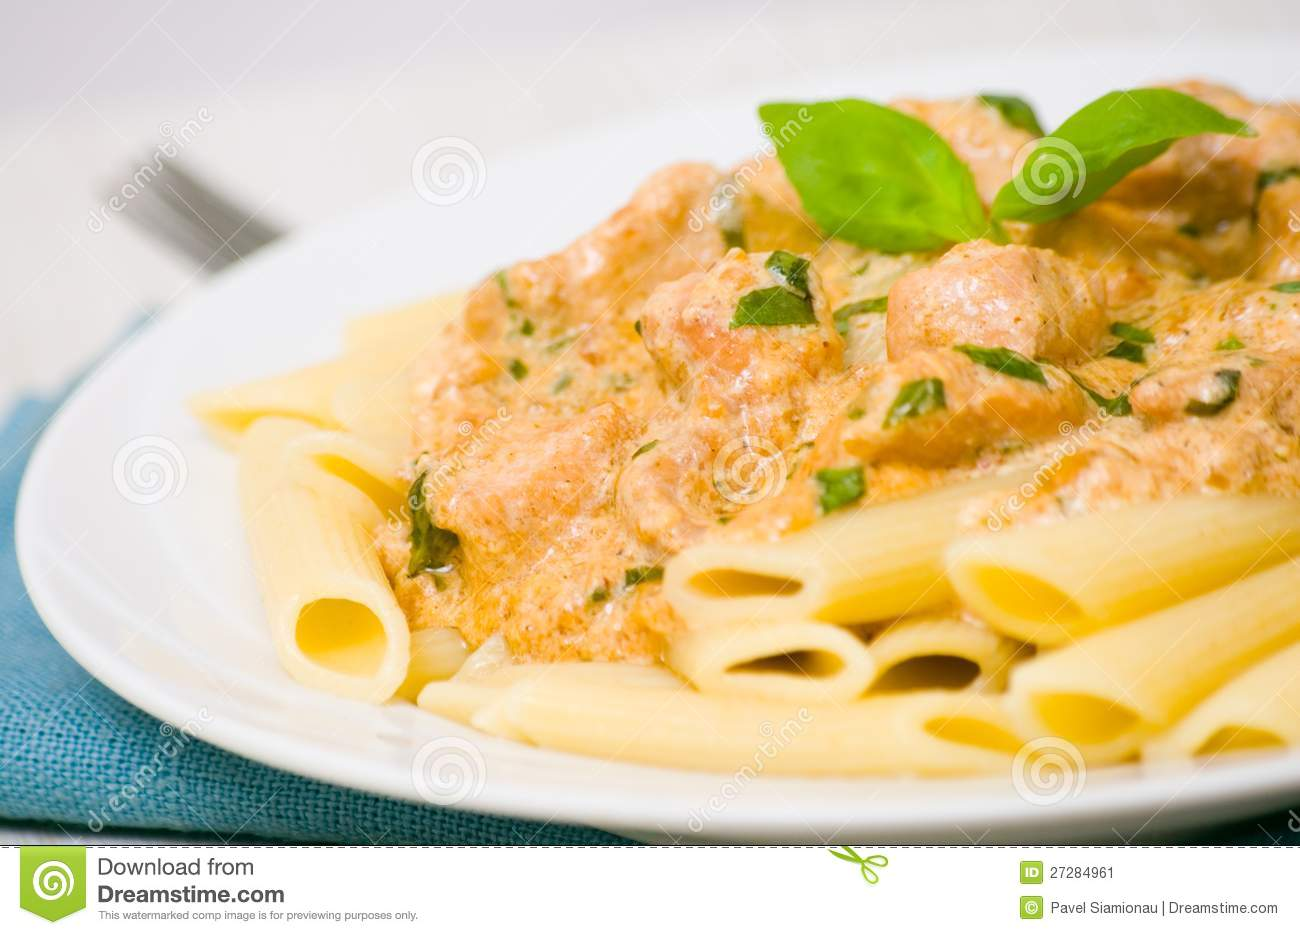 Penne Pasta With Chicken Meat, Cream Sauce Stock Image - Image ...